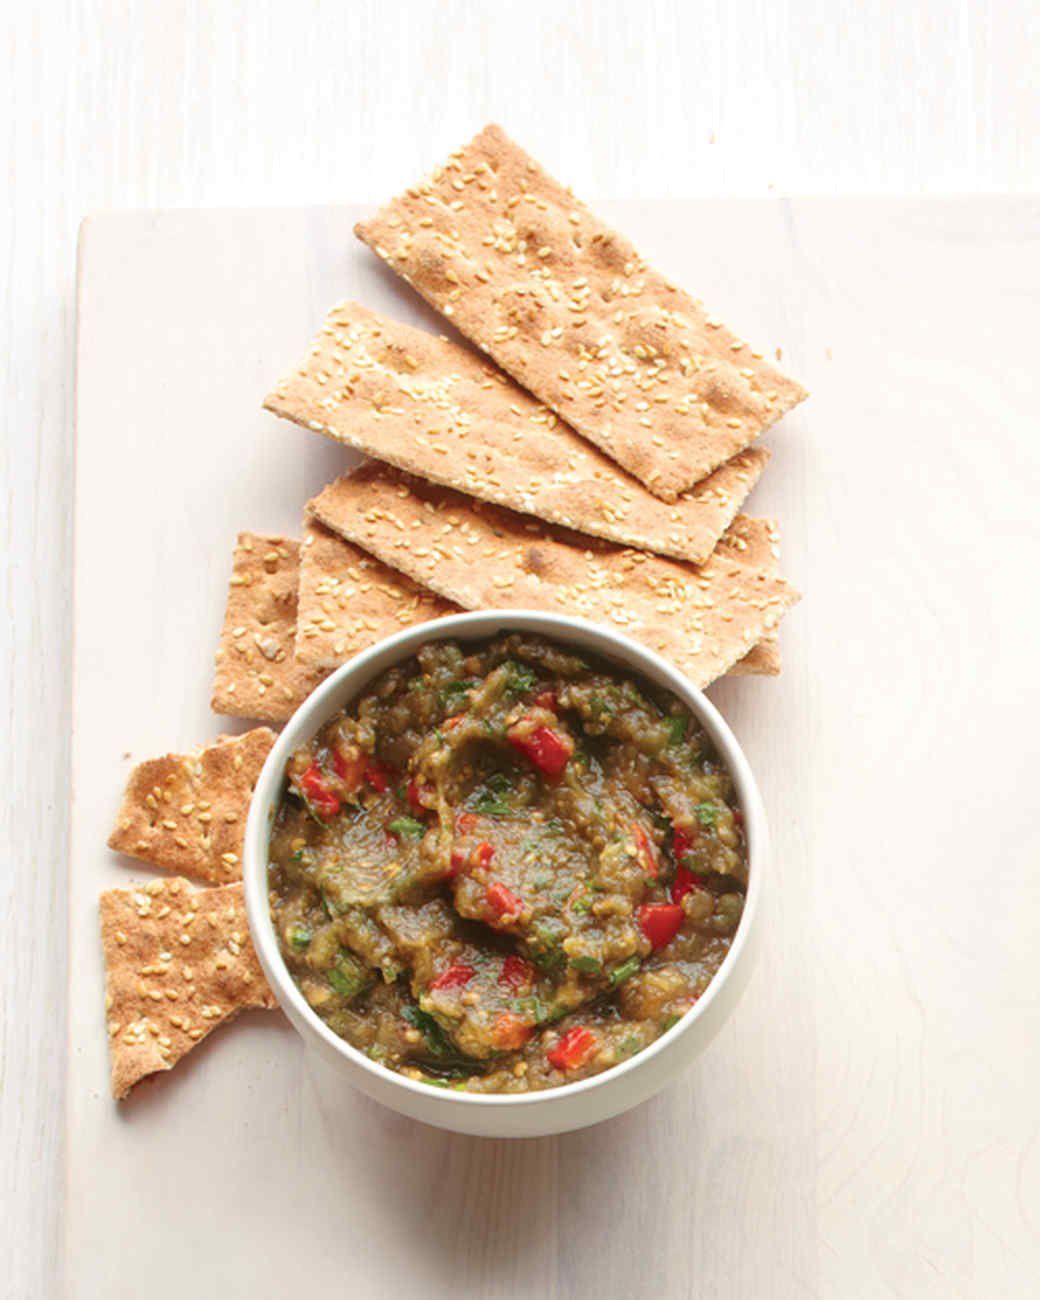 Caponata with Flatbread